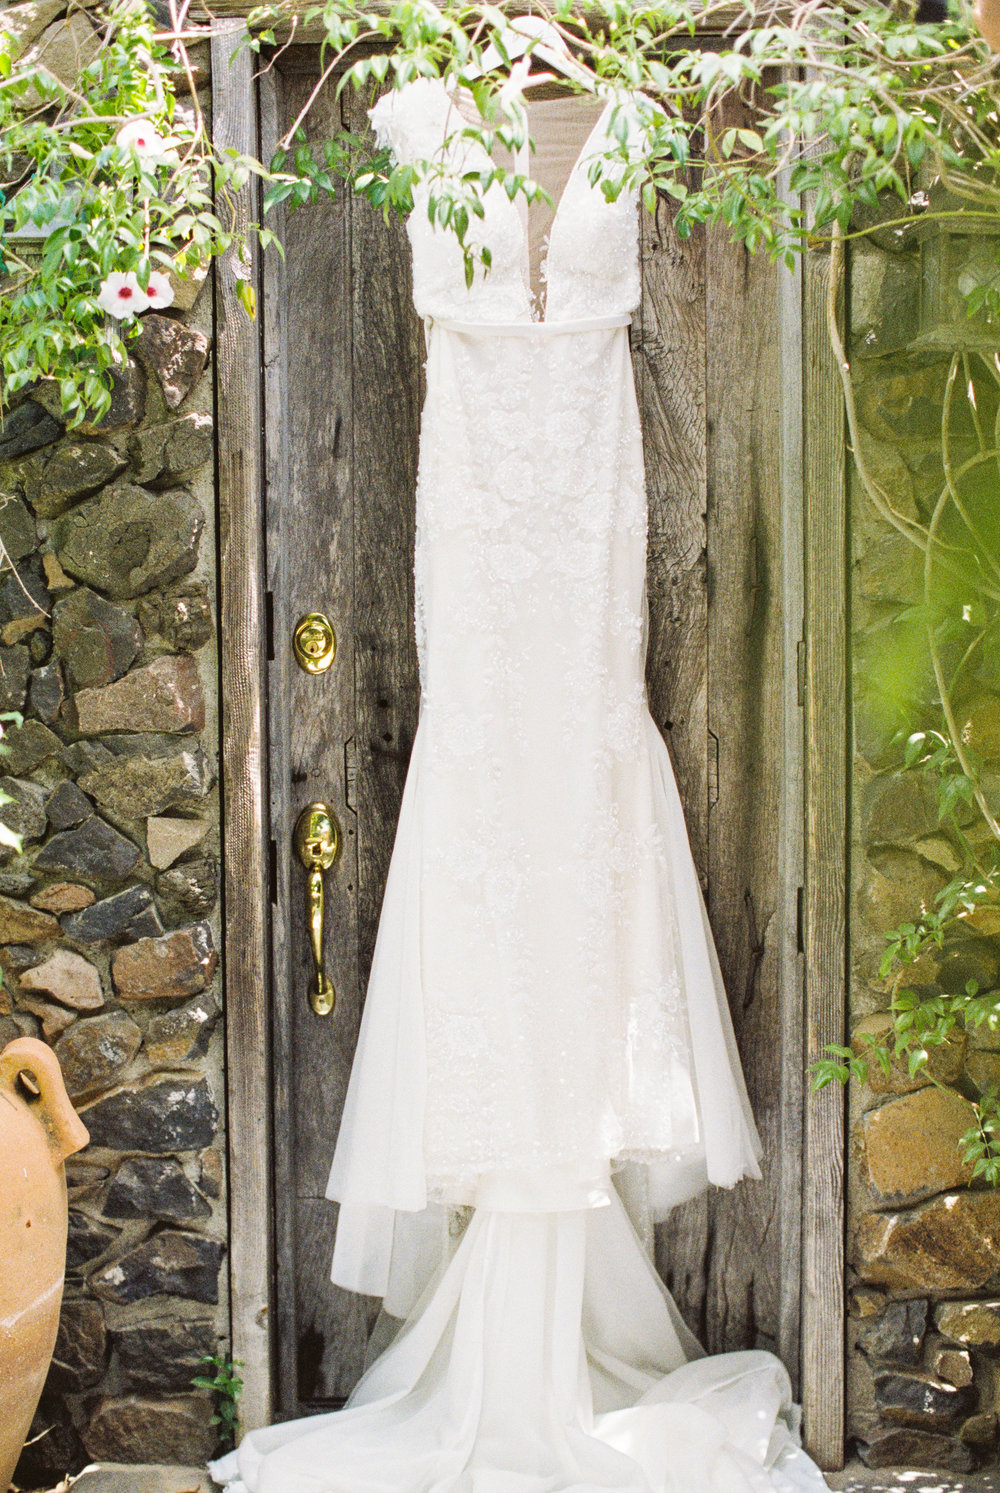 4. Wedding Dress.JPG